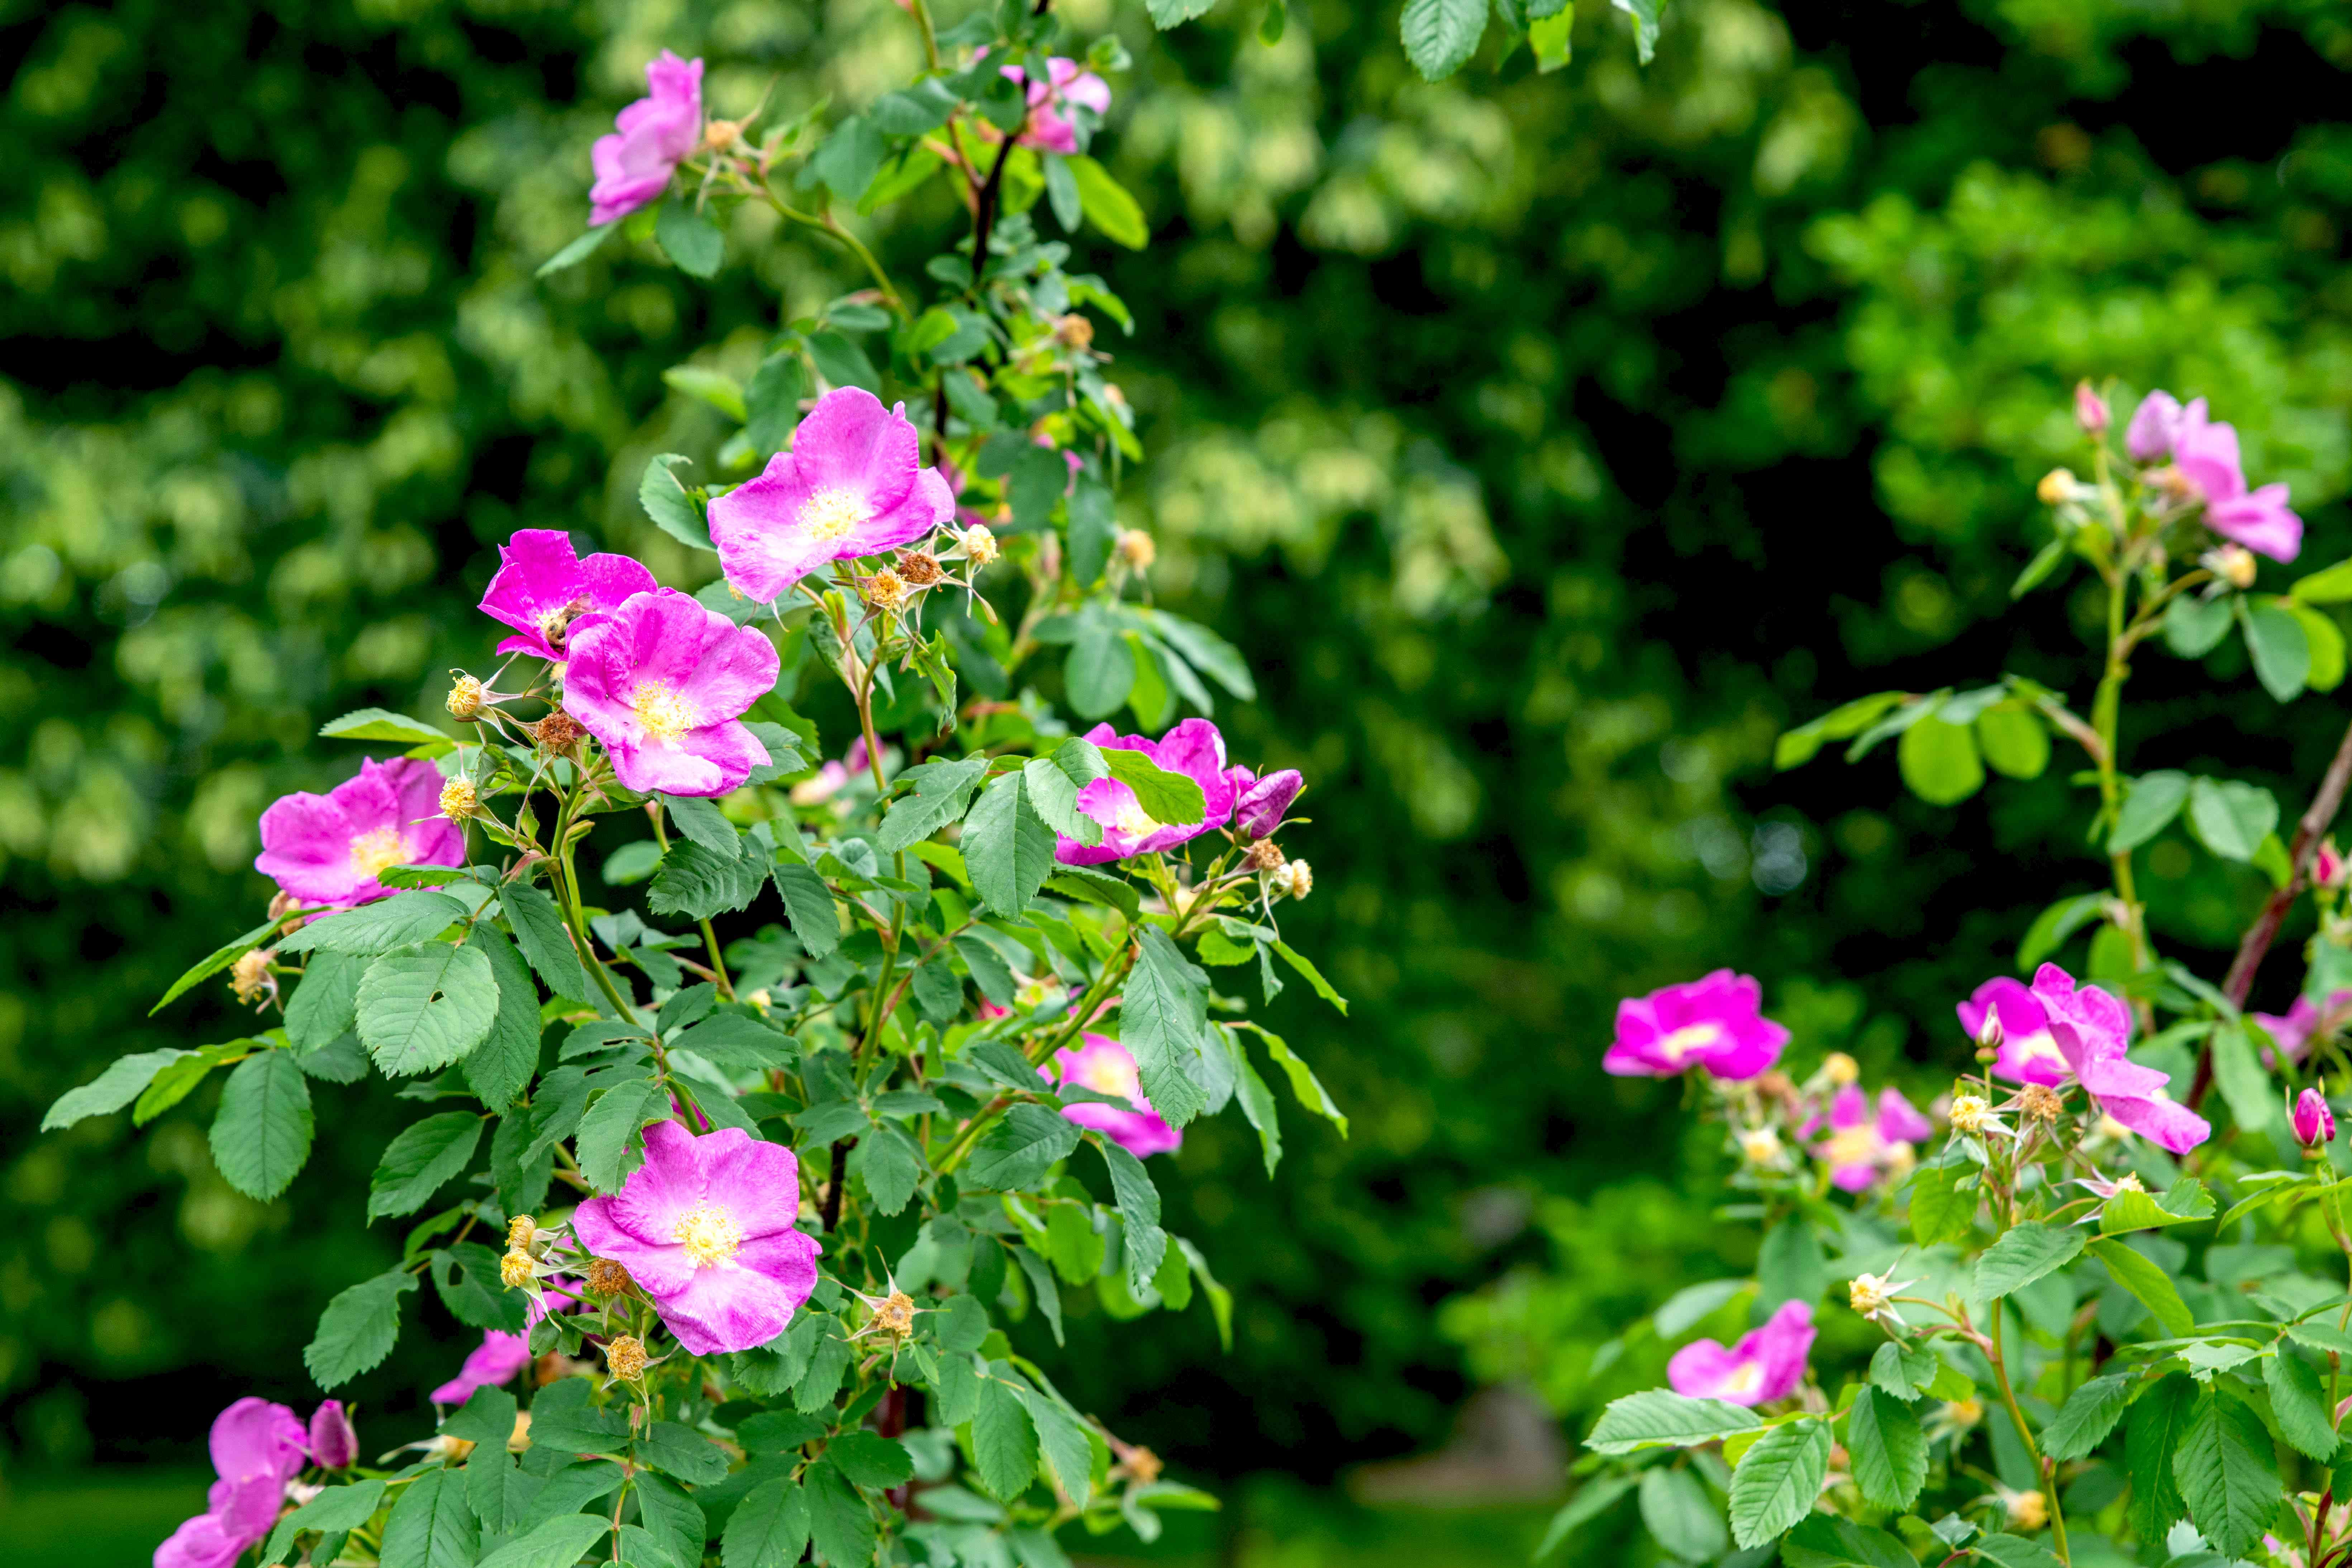 Carolina rose shrub with tall branches and large pink flowers